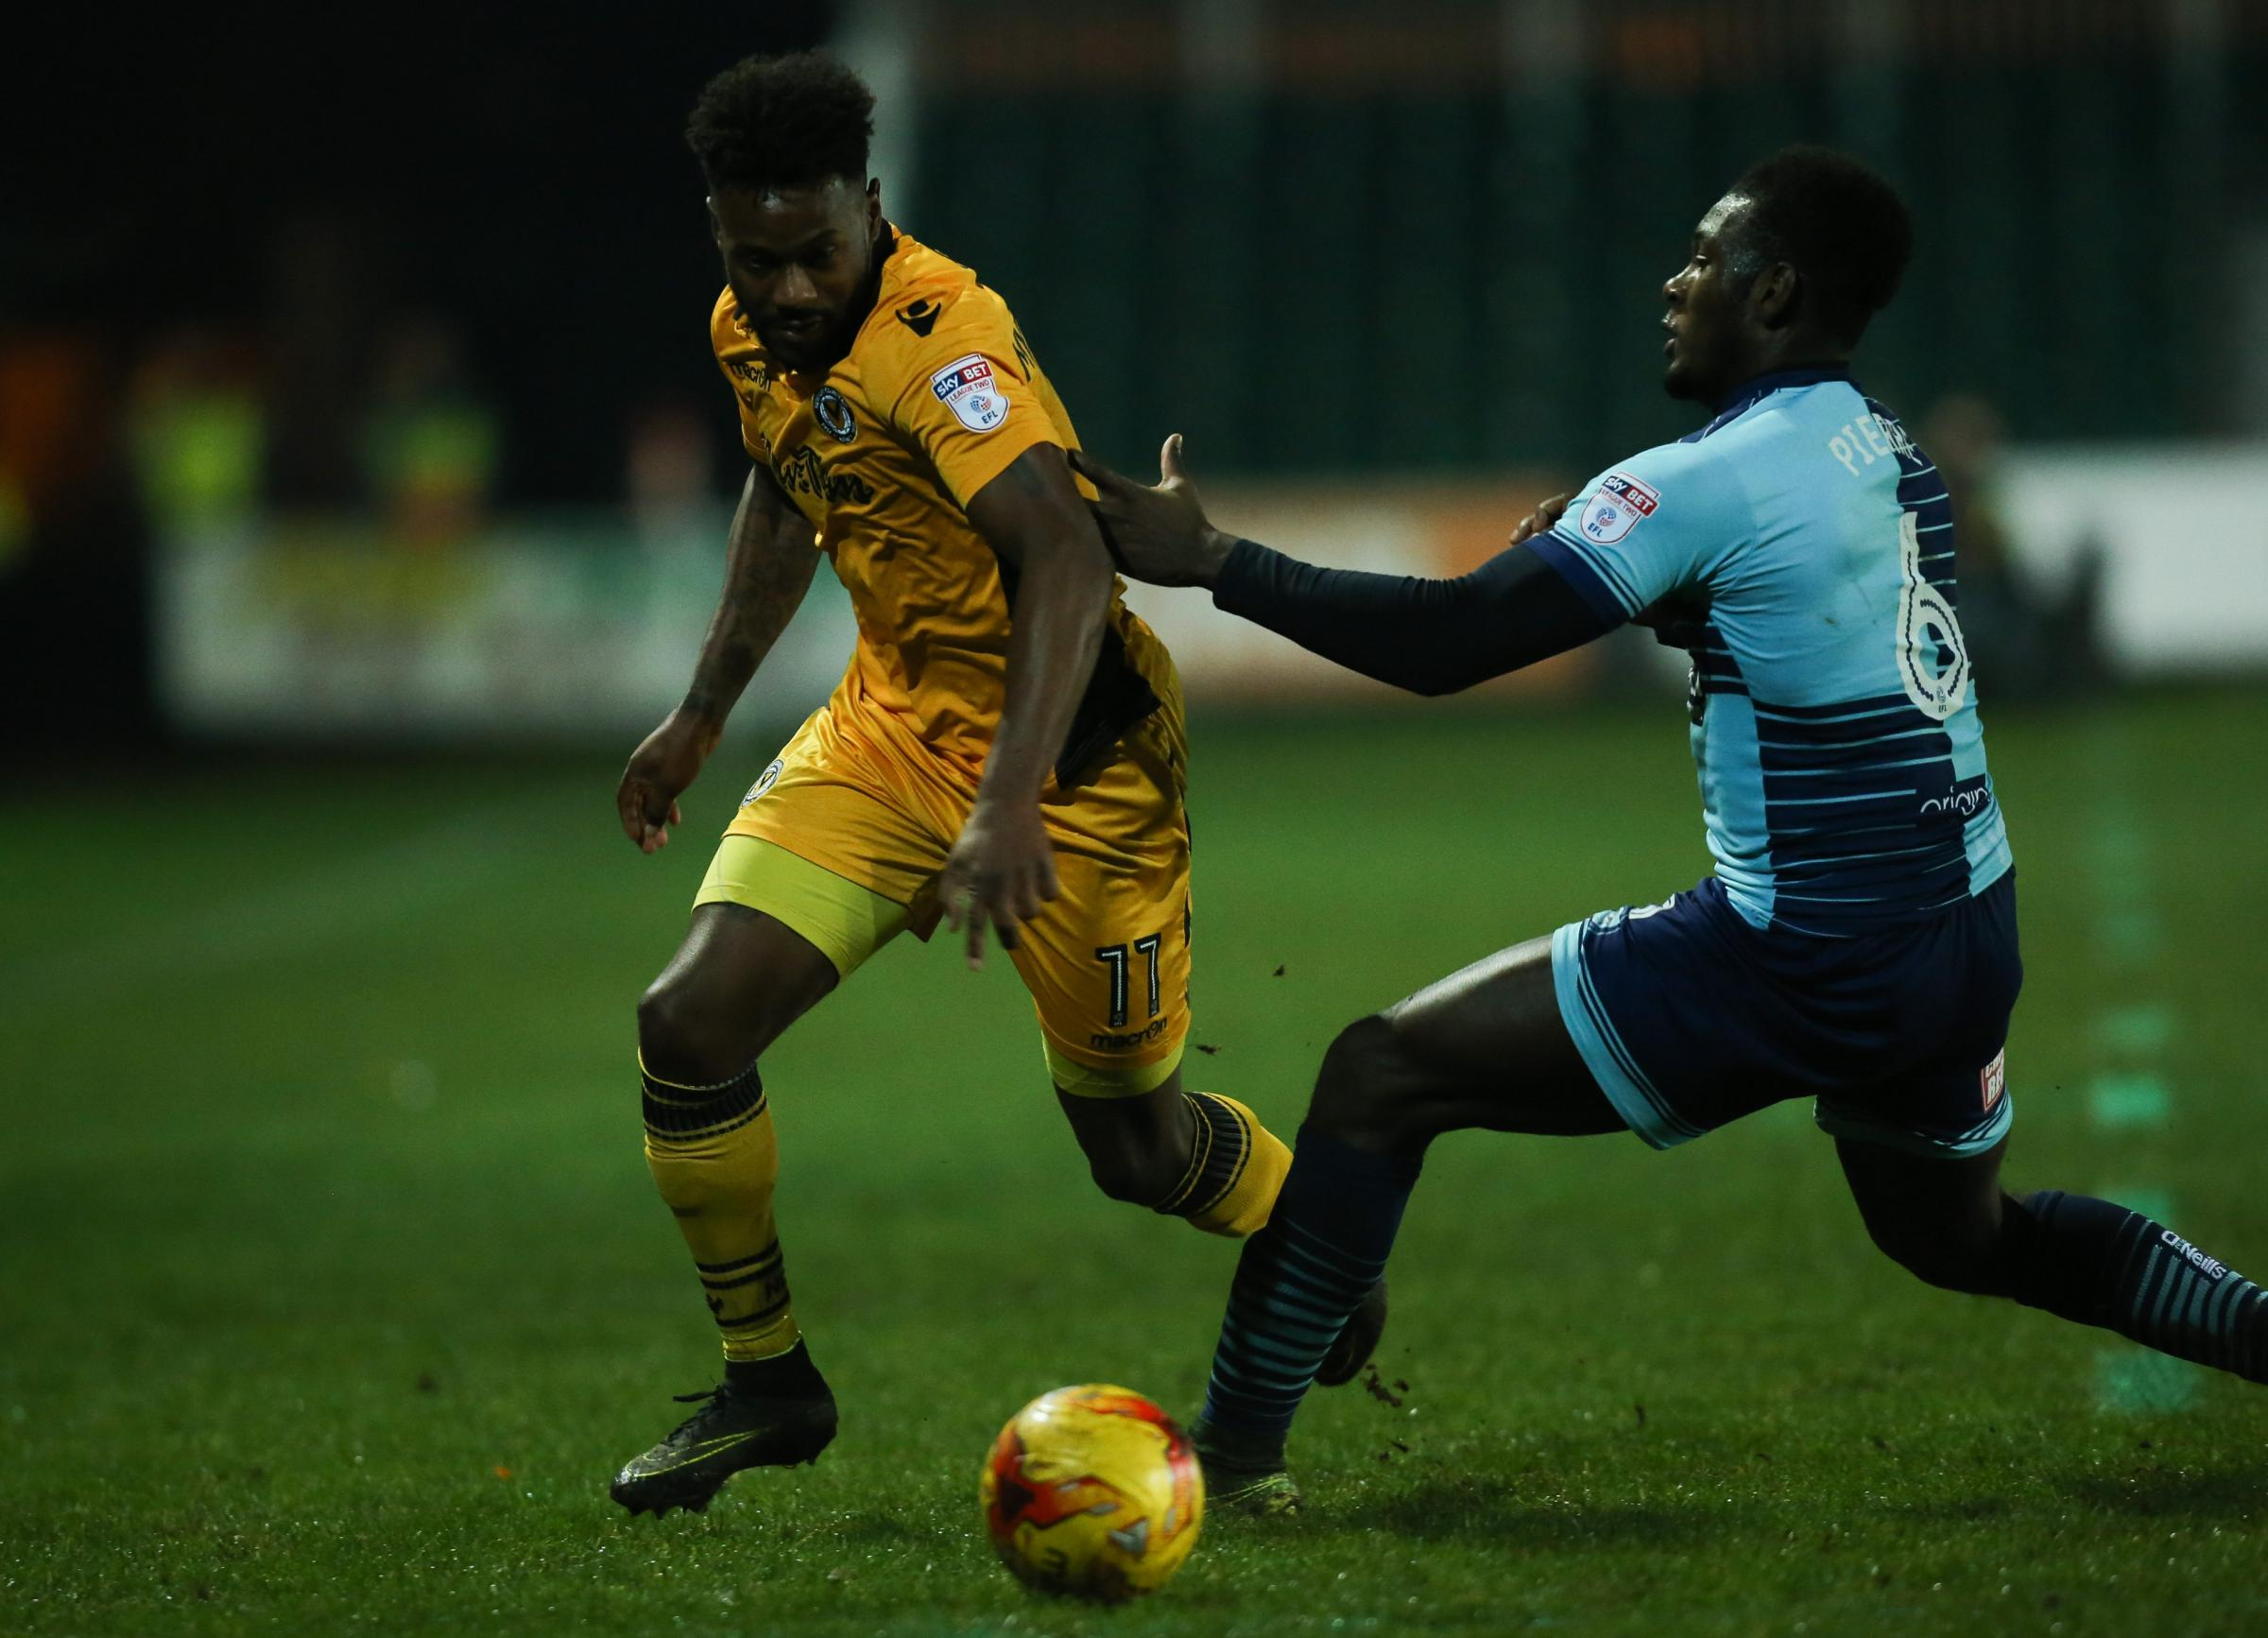 DEFENSIVE DUTIES: Jennison Myrie-Williams, left, impressed at left-back against Morecambe